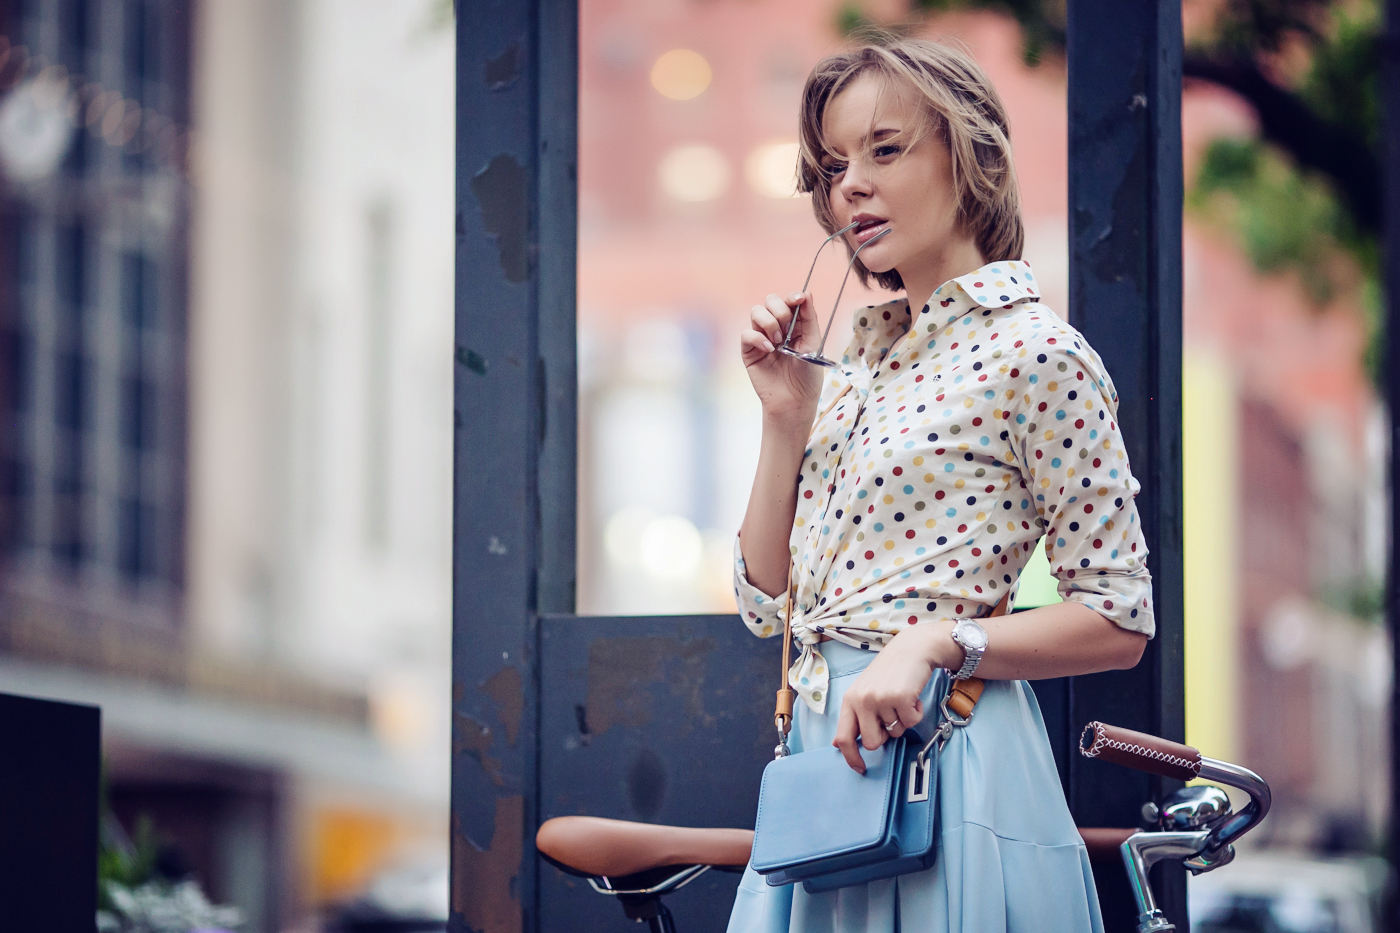 darya kamalova a fashion blogger from thecablook in dallas texas on the bycicle in polka dot shirt and blue skirt with gold espadrilles and other storie bag for rewardstyle rsthecon-19